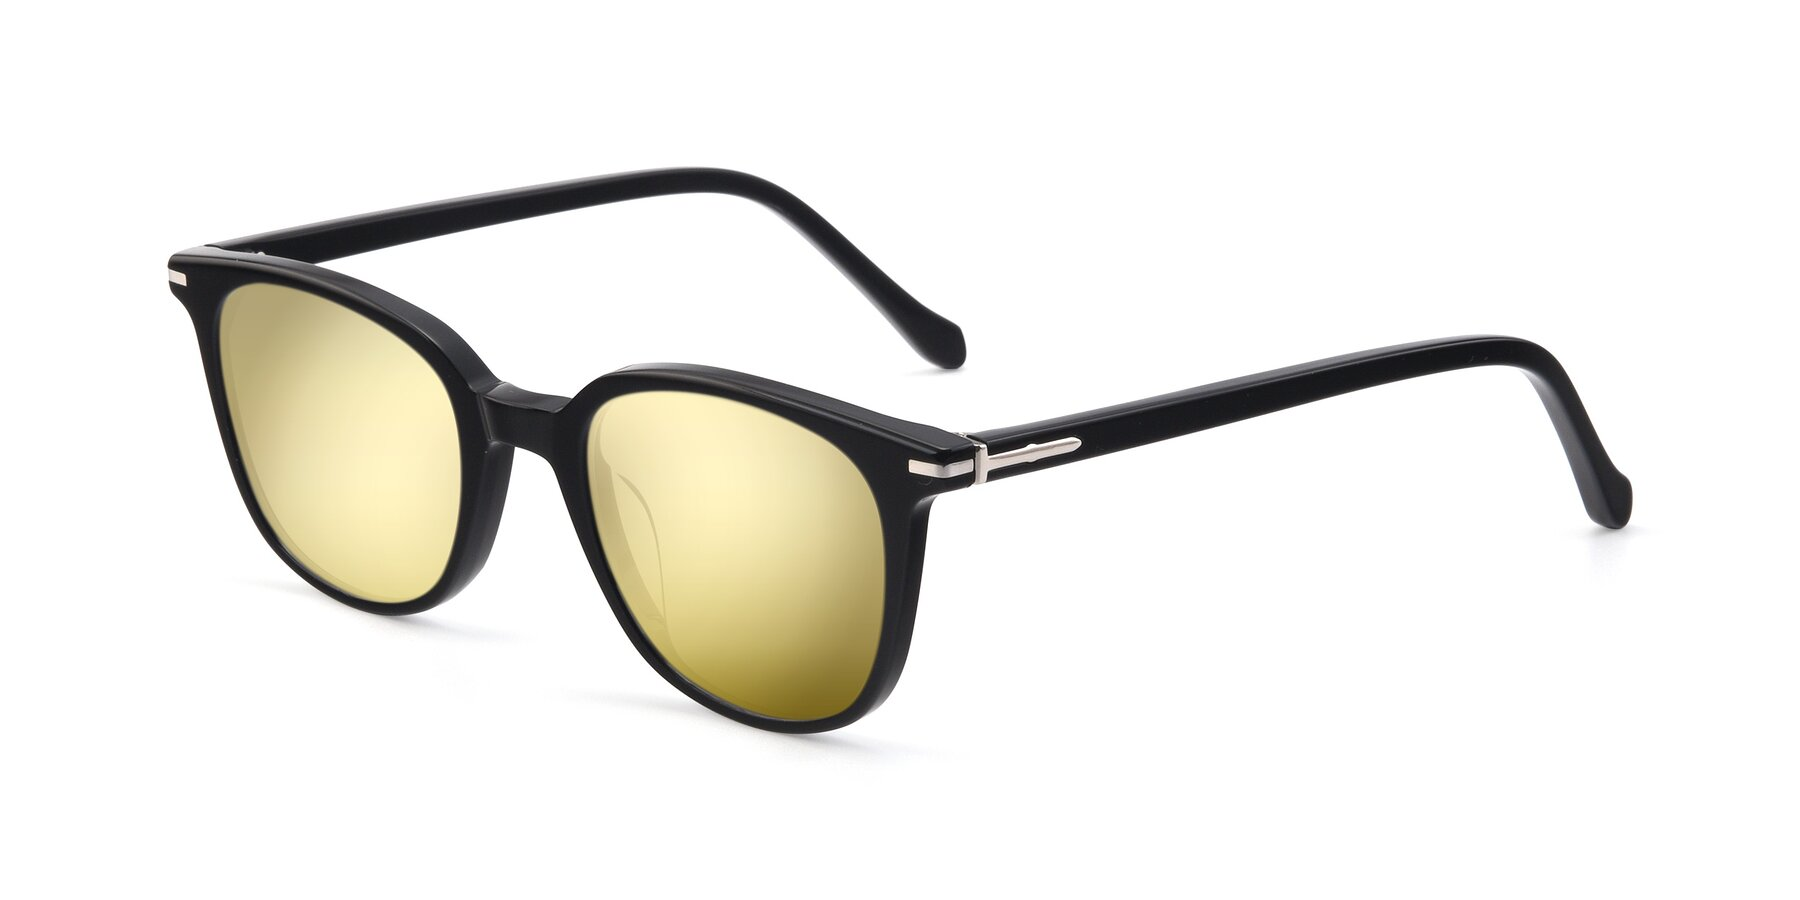 Angle of 17562 in Black with Gold Mirrored Lenses